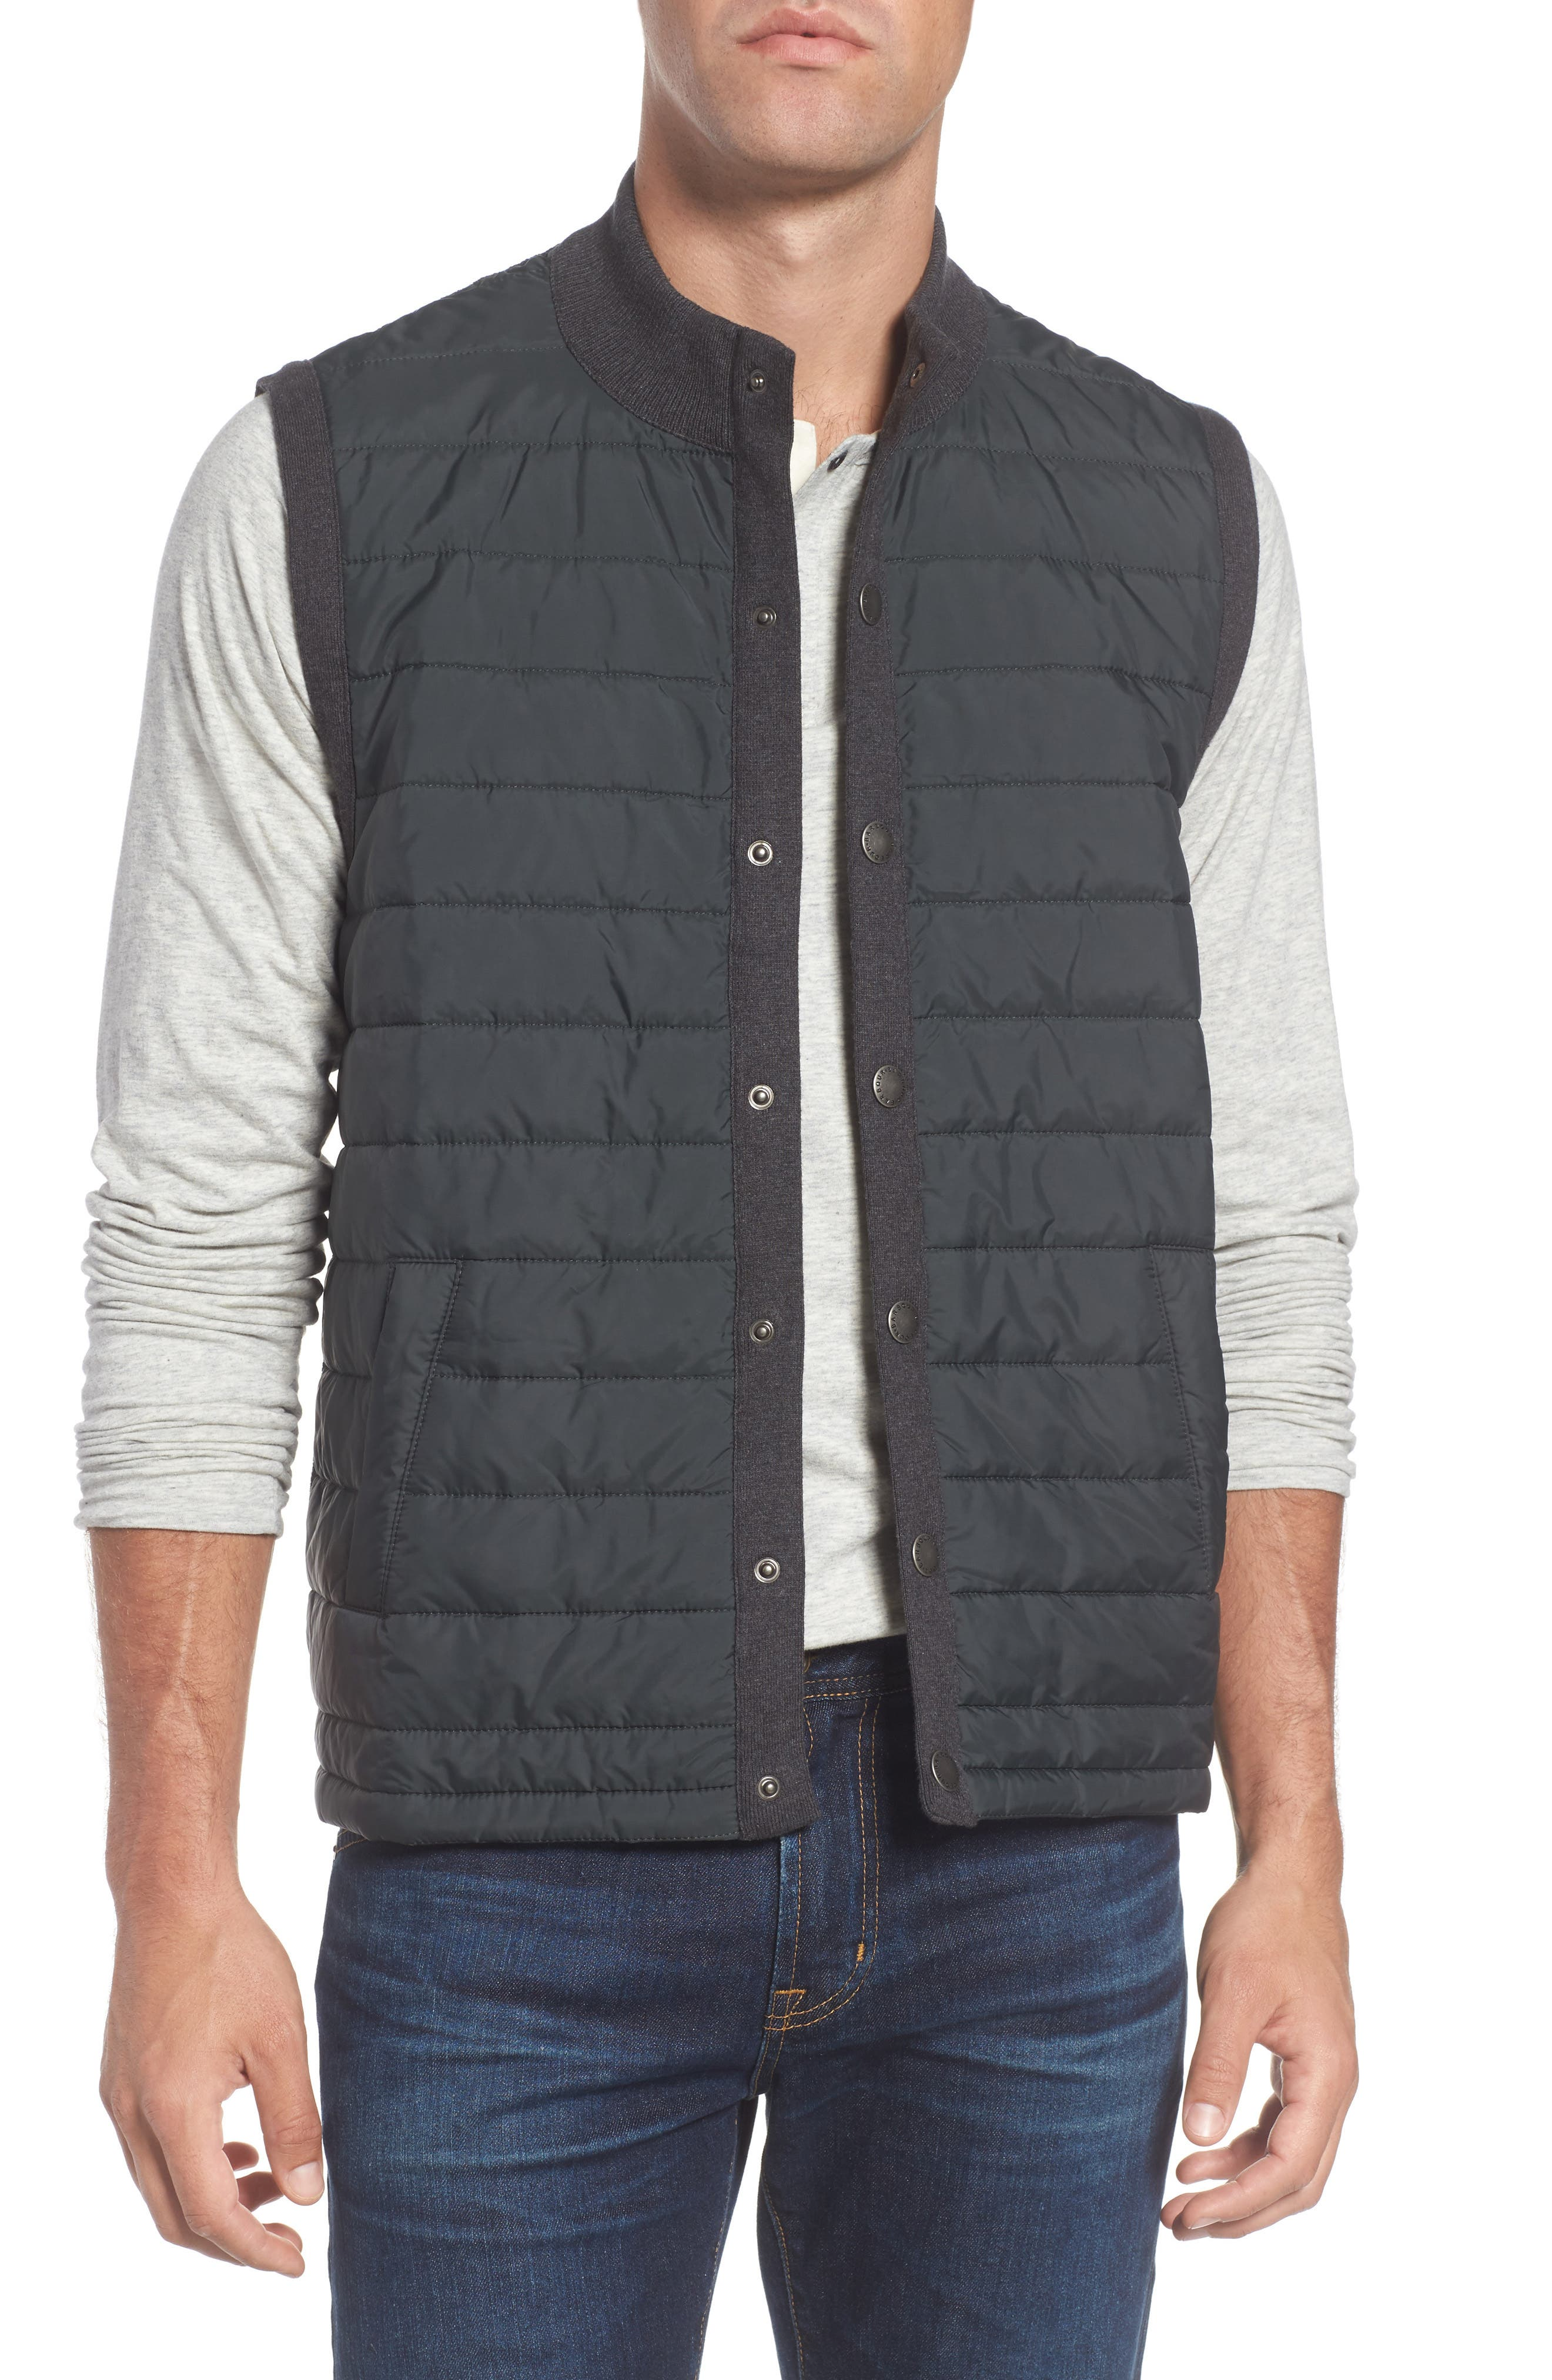 'Essential' Tailored Fit Mixed Media Vest,                         Main,                         color, 020